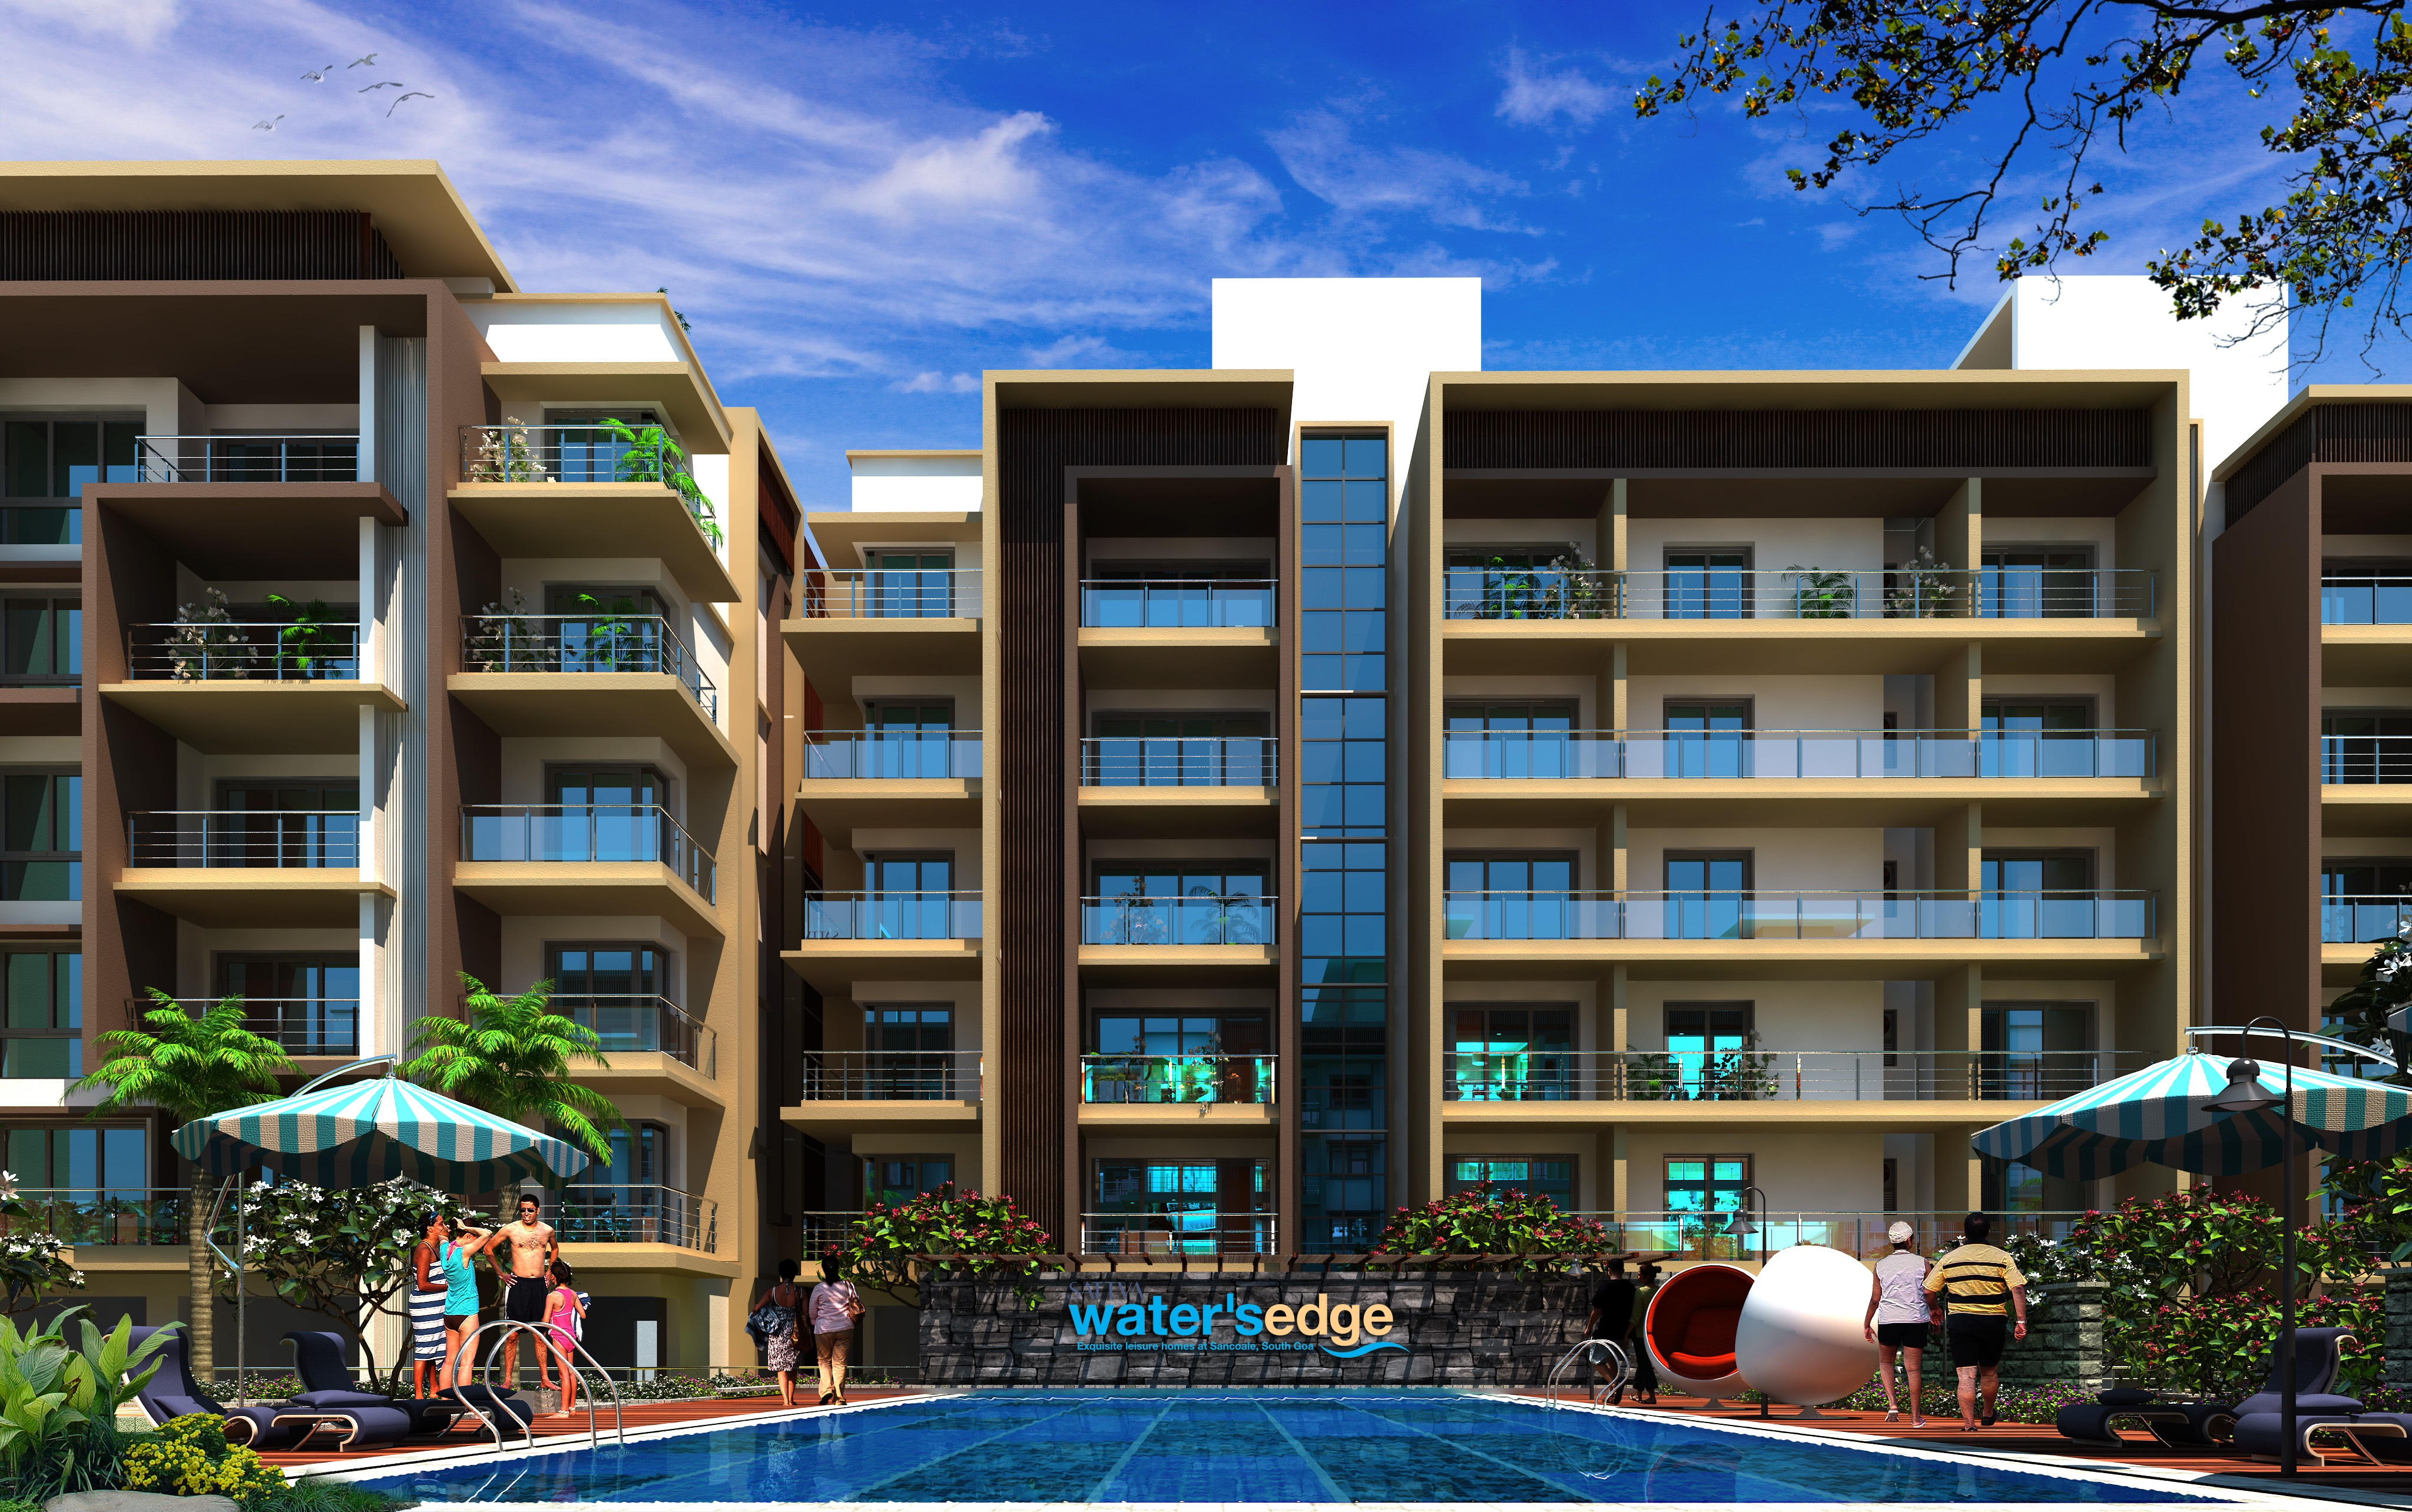 Salarpuria Sattva Water's Edge, Goa property launches, Goa projects, Housing market in Goa, Real estate in Goa, Investment in Goa property, India real estate news, Indian realty news, Real estate news India, Indian property market news, Track2Realty